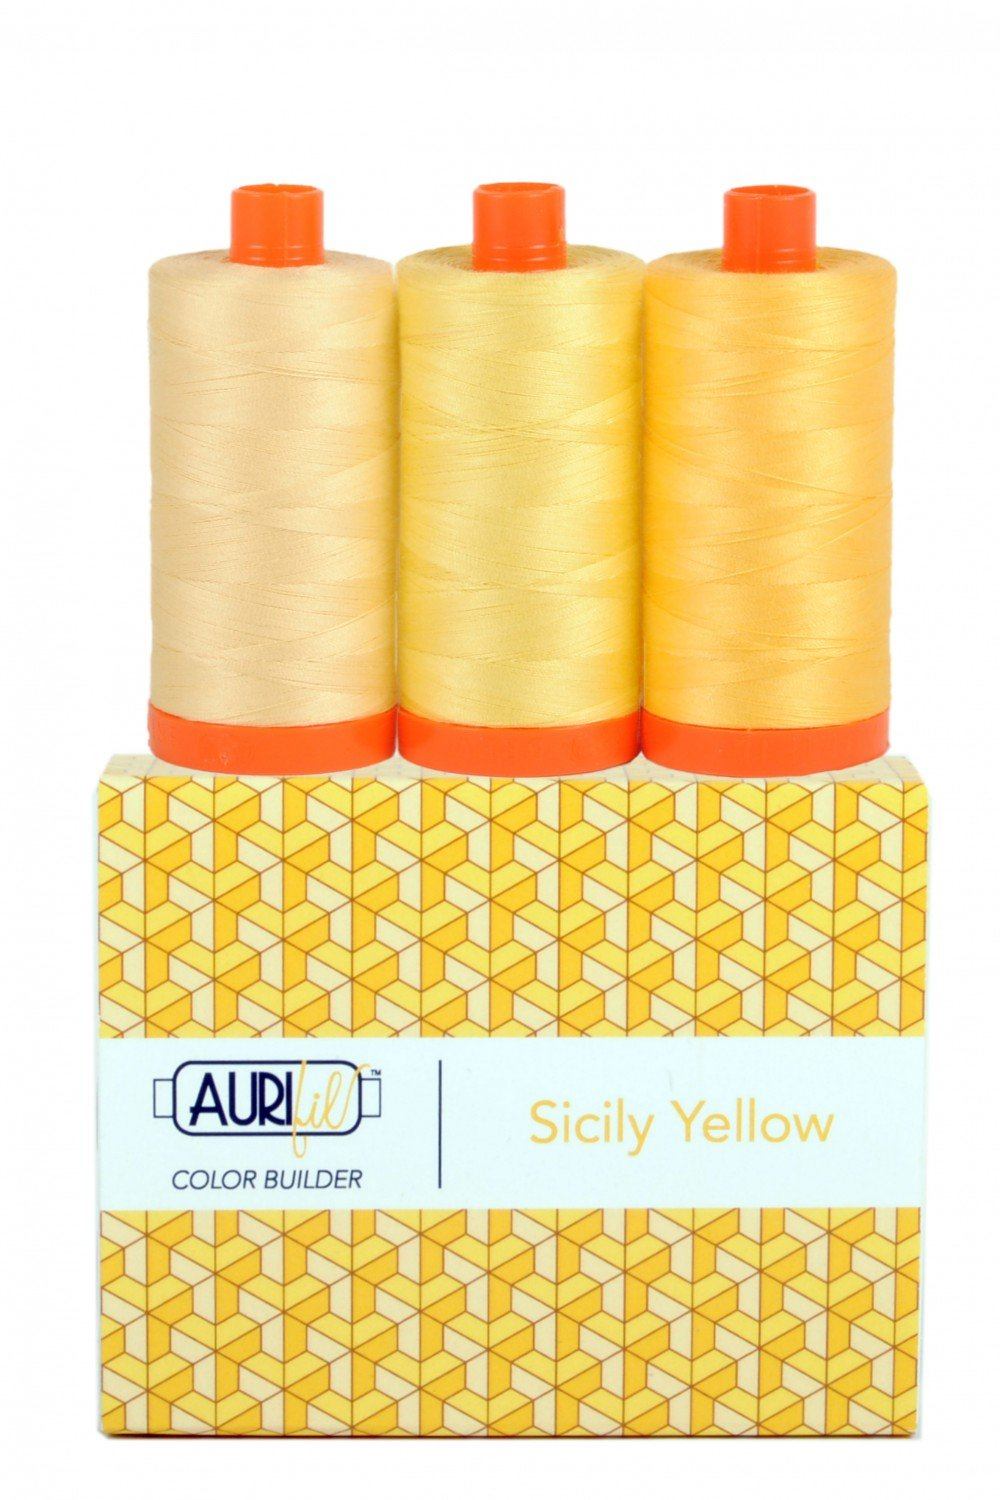 Aurifil Color Builder 3pc Set - Sicily Yellow